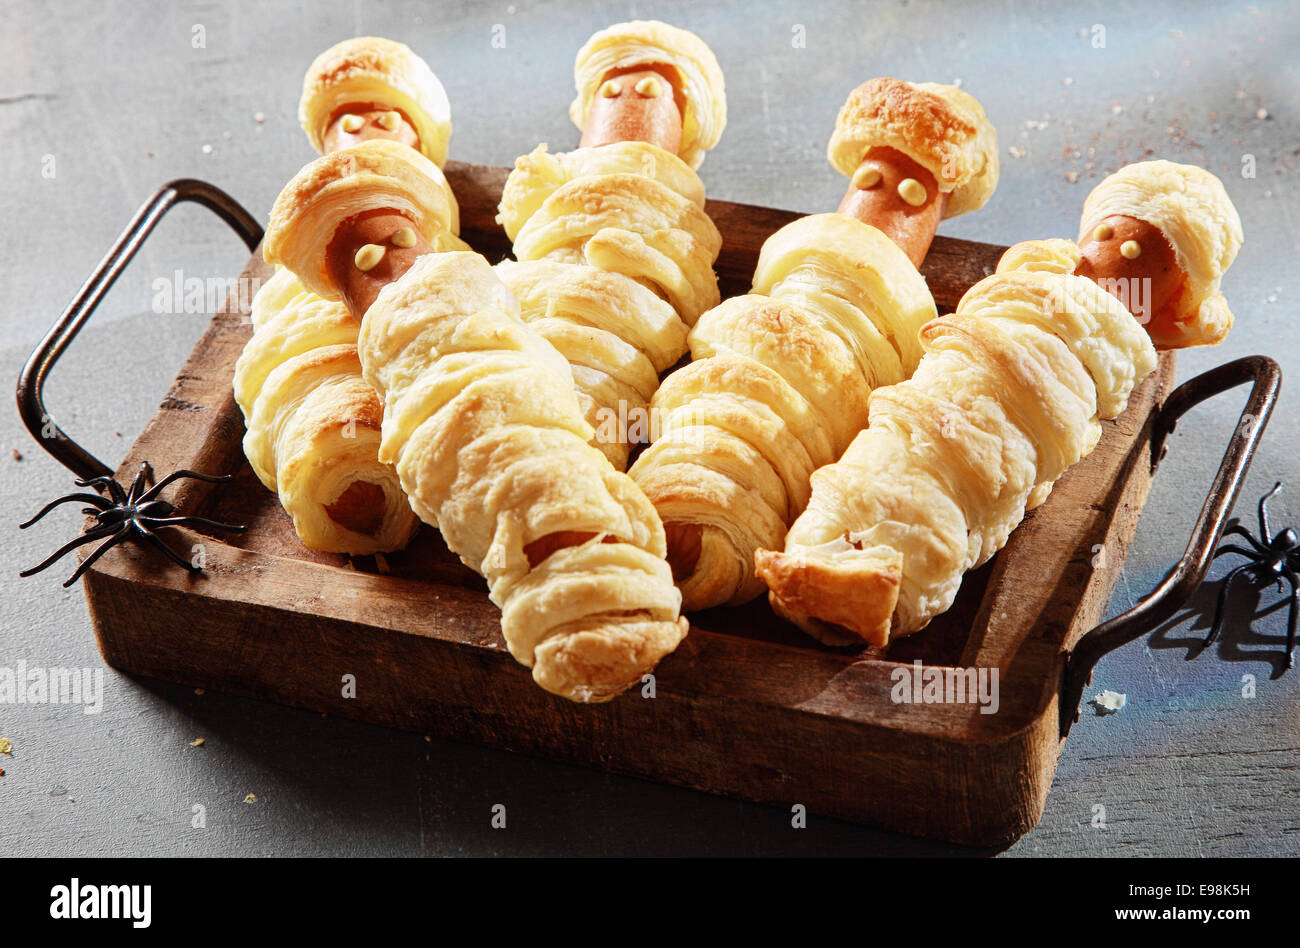 five weiner mummies wrapped in pastry on tray for halloween party appetizer